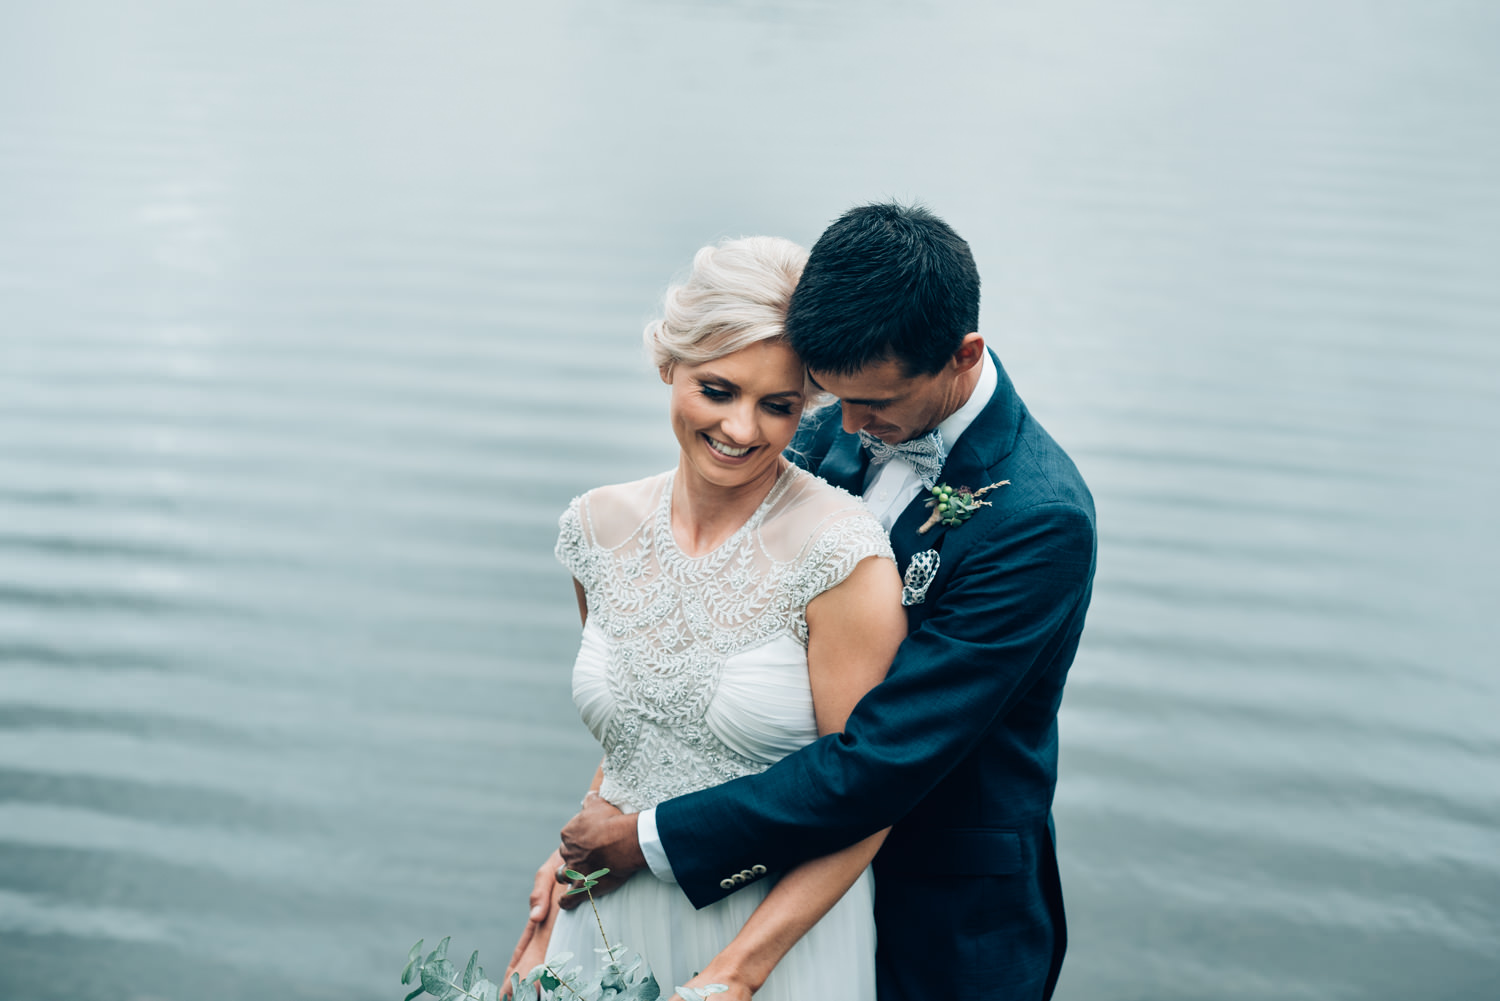 gemma & sam's private property yallingup wedding styled by empire events photographed by freedom garvey